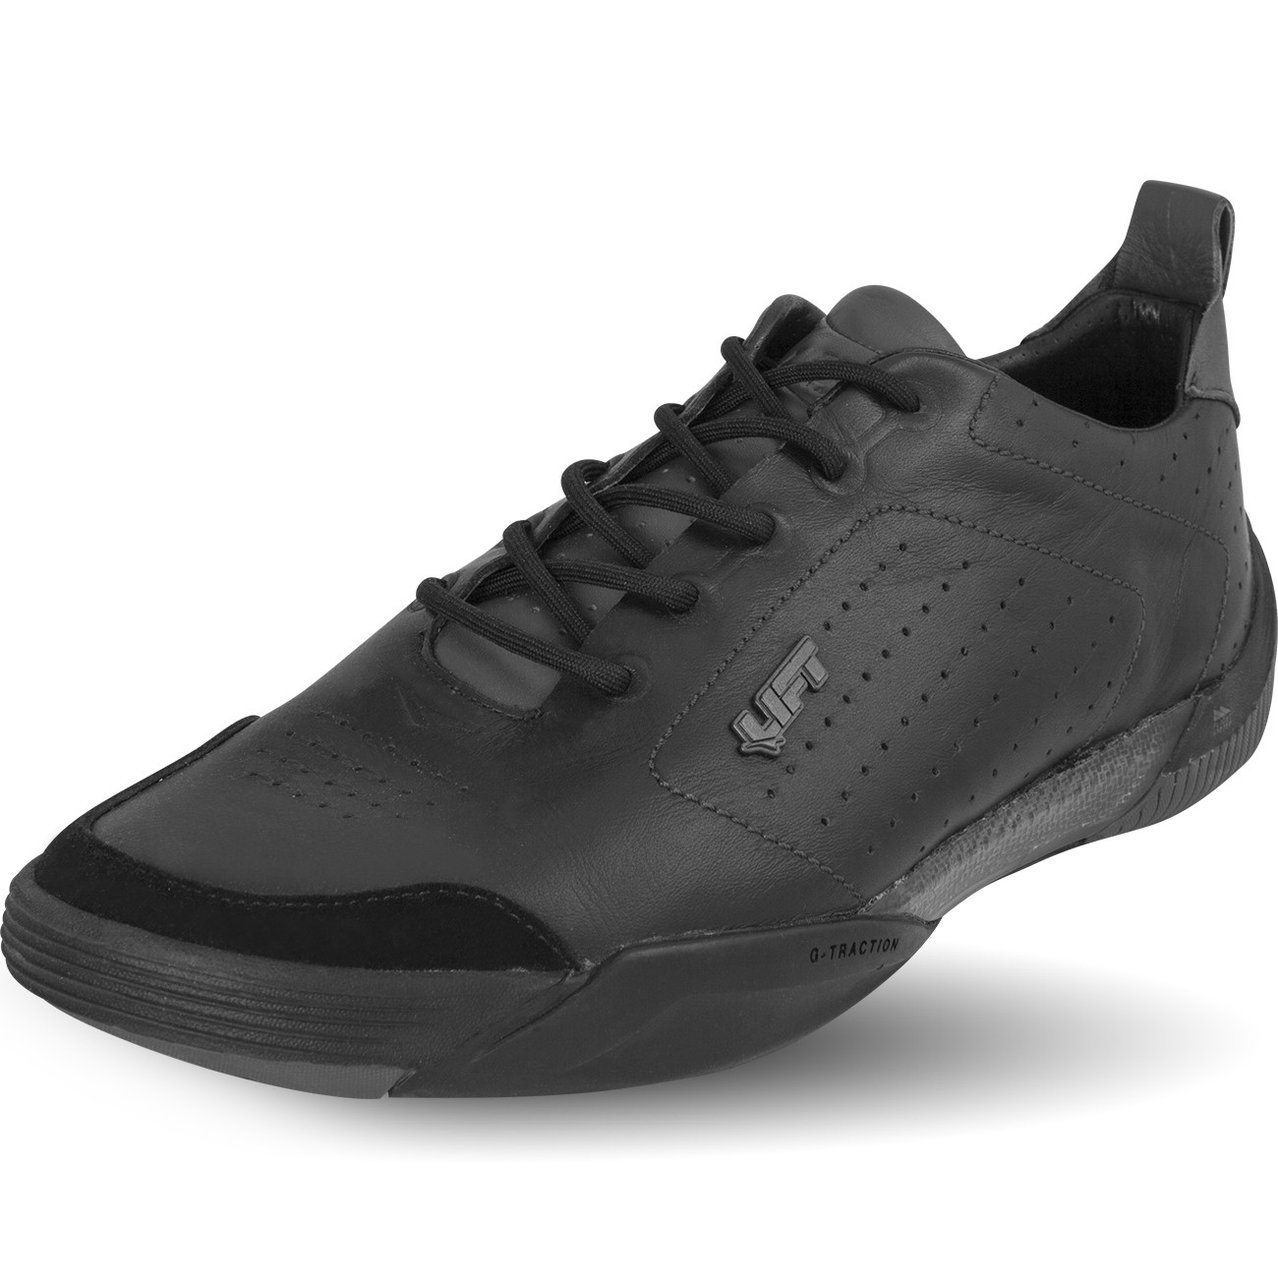 Aviation shoes DAKOTA - Black ( fire resistant )